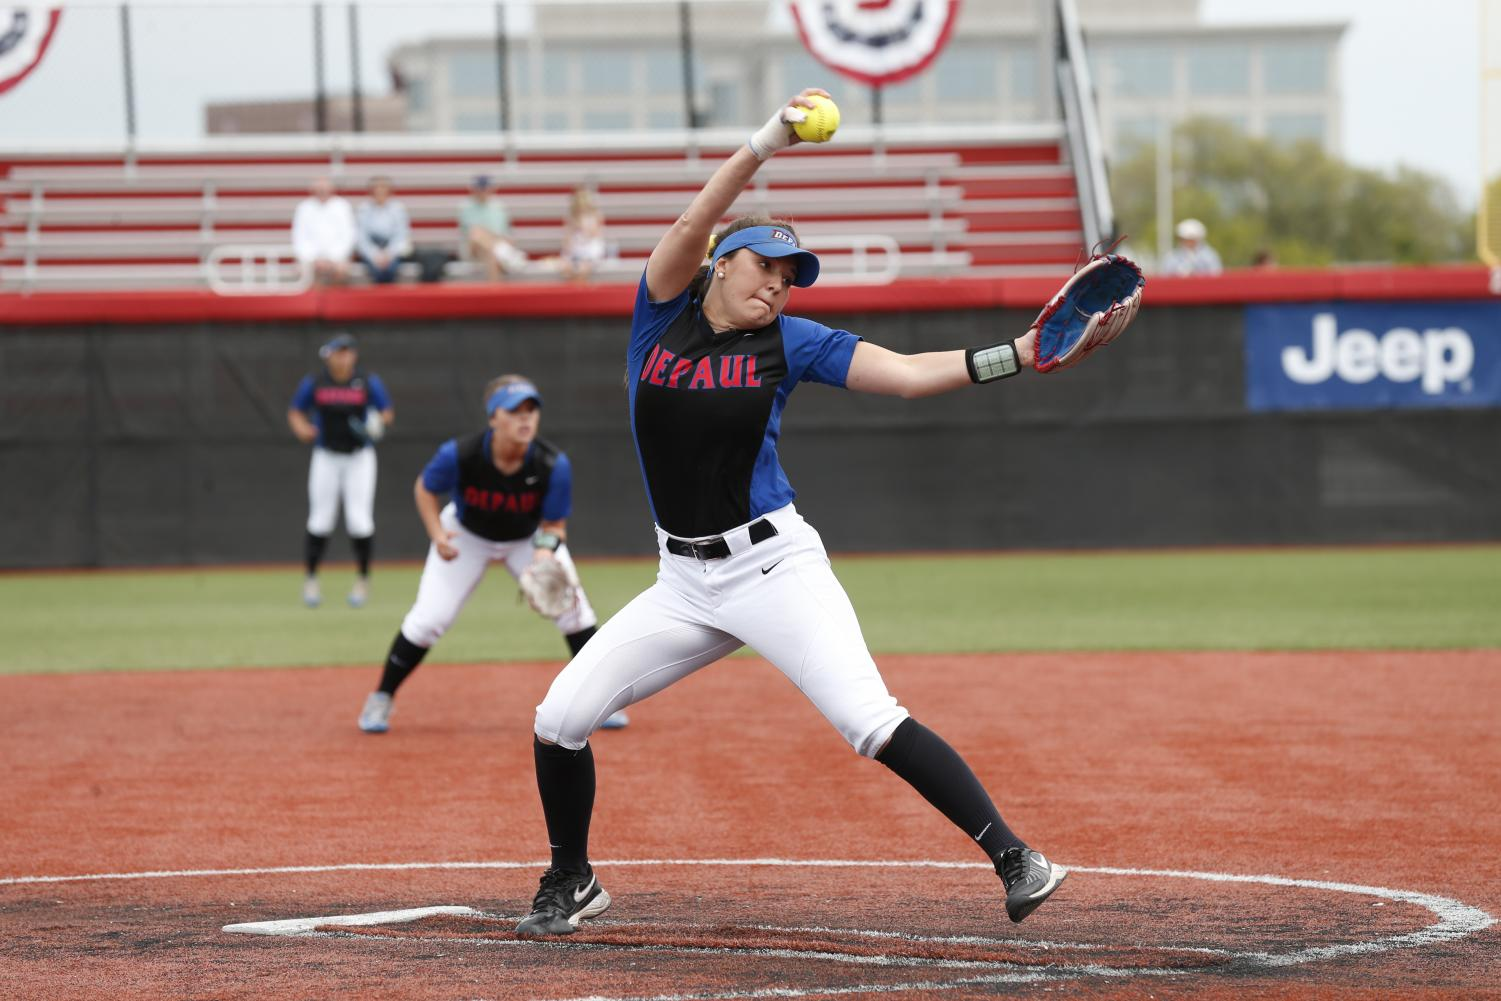 After bursting onto the scene as a freshman, sophomore pitching sensation Missy Zoch has nine complete games this season. (Steve Woltmann | DePaul Athletics)